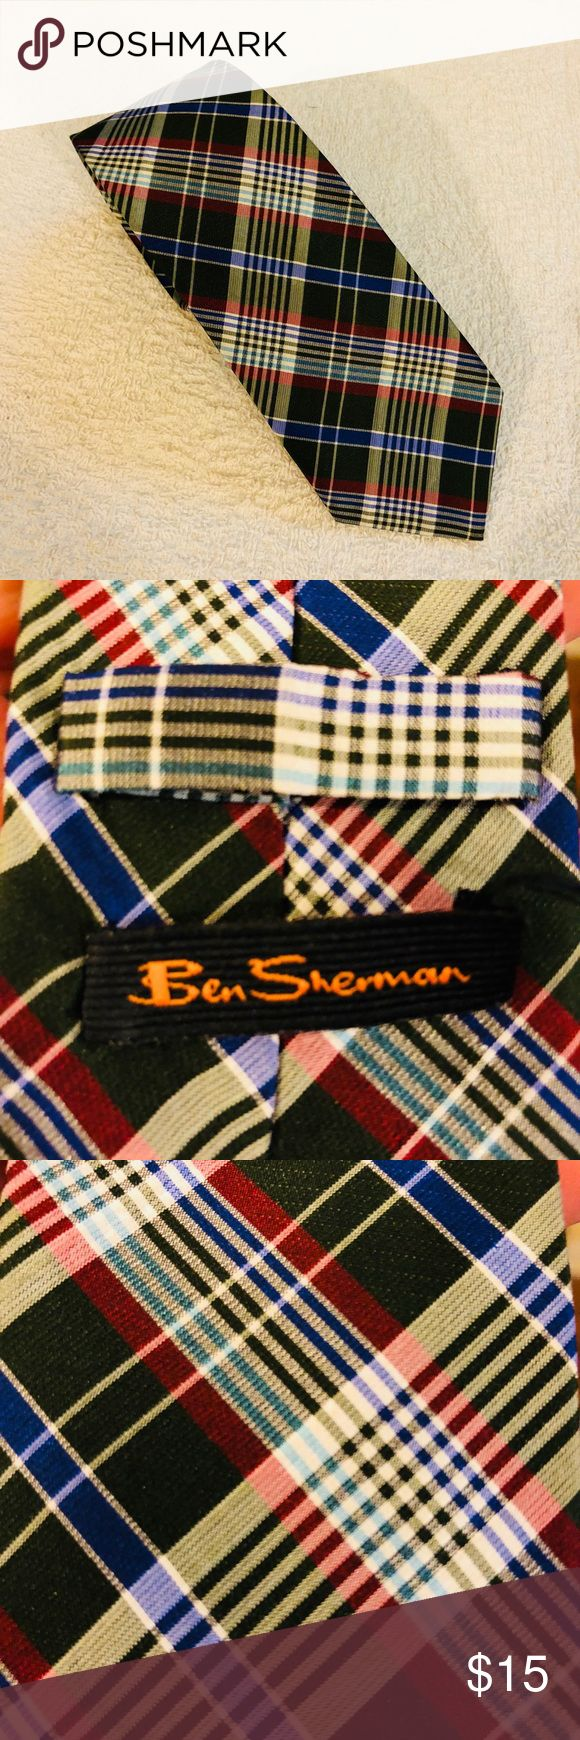 Ben Sherman Olive, White, Blue & Red Plaid Tie Ben Sherman Olive Green, White, Blue and Red Plaid Skinny Modern Slim Silk Necktie! Great condition! Please make reasonable offers and bundle! Ask questions! Ben Sherman Accessories Ties